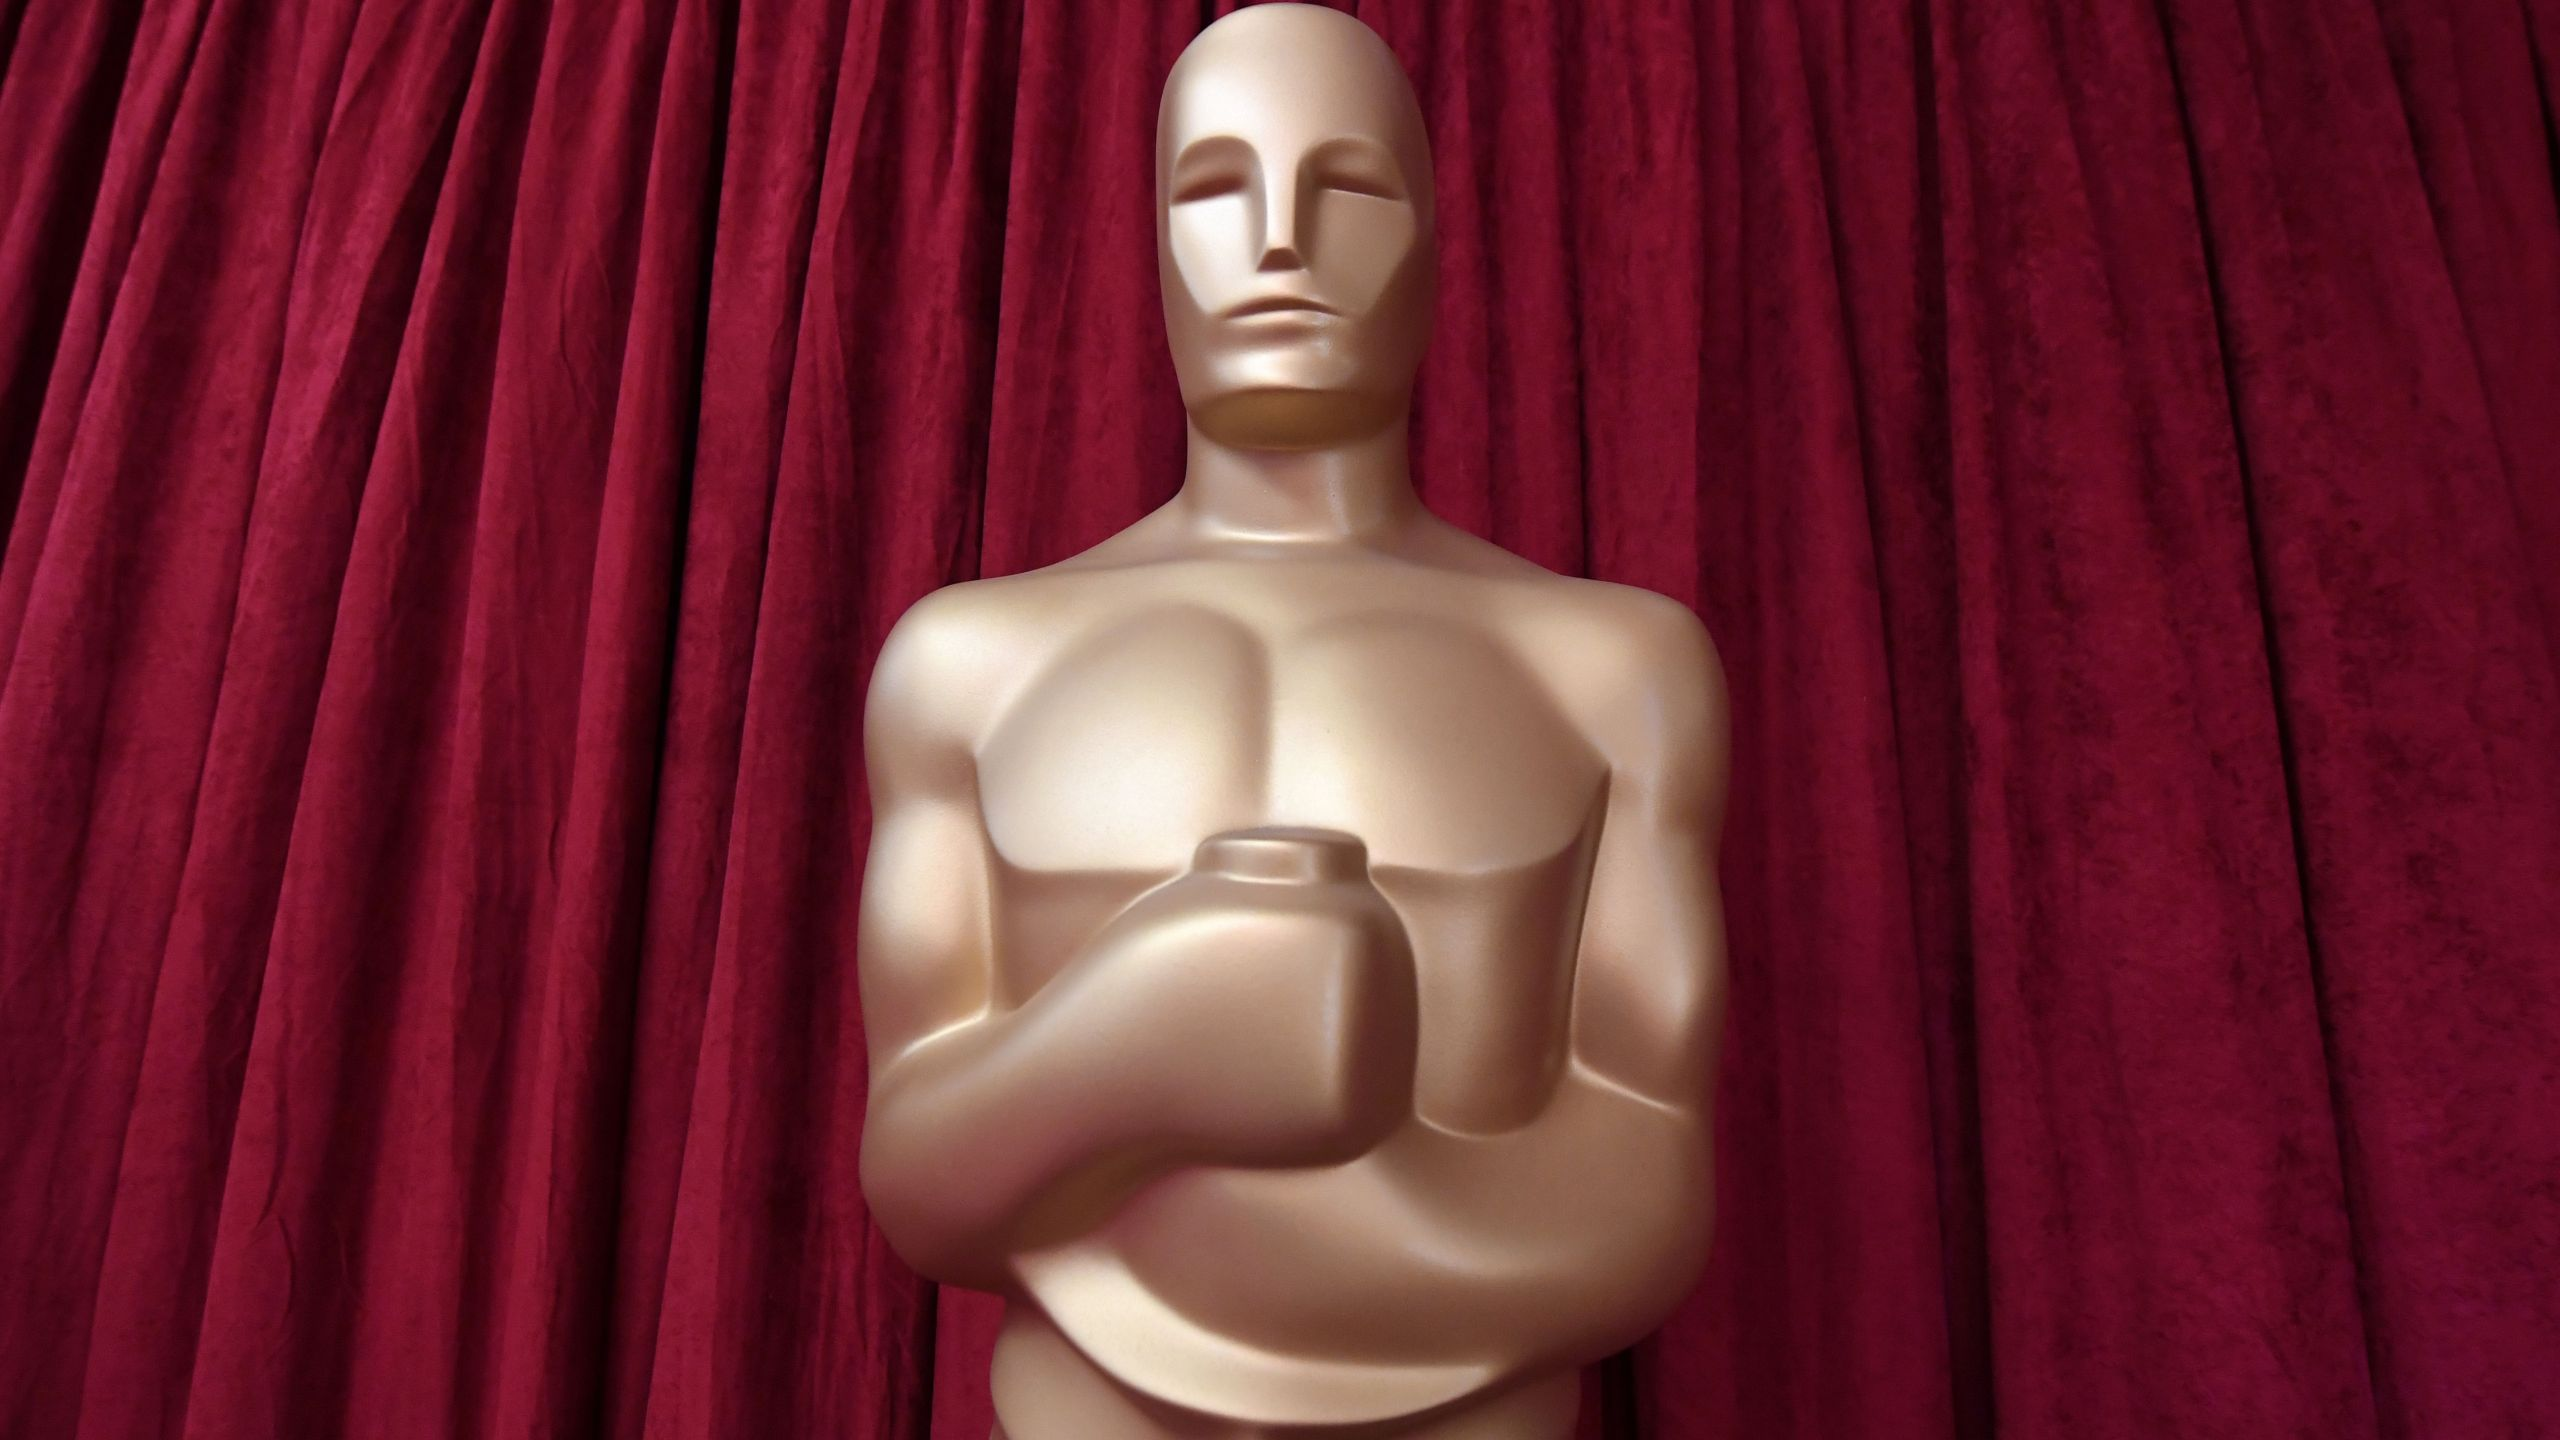 An Oscars statue is seen as preparations are made ahead of the 91st Annual Academy Awards at the Dolby Theatre in Hollywood on Feb. 24, 2019. (Credit: Mark Ralston/AFP/Getty Images)